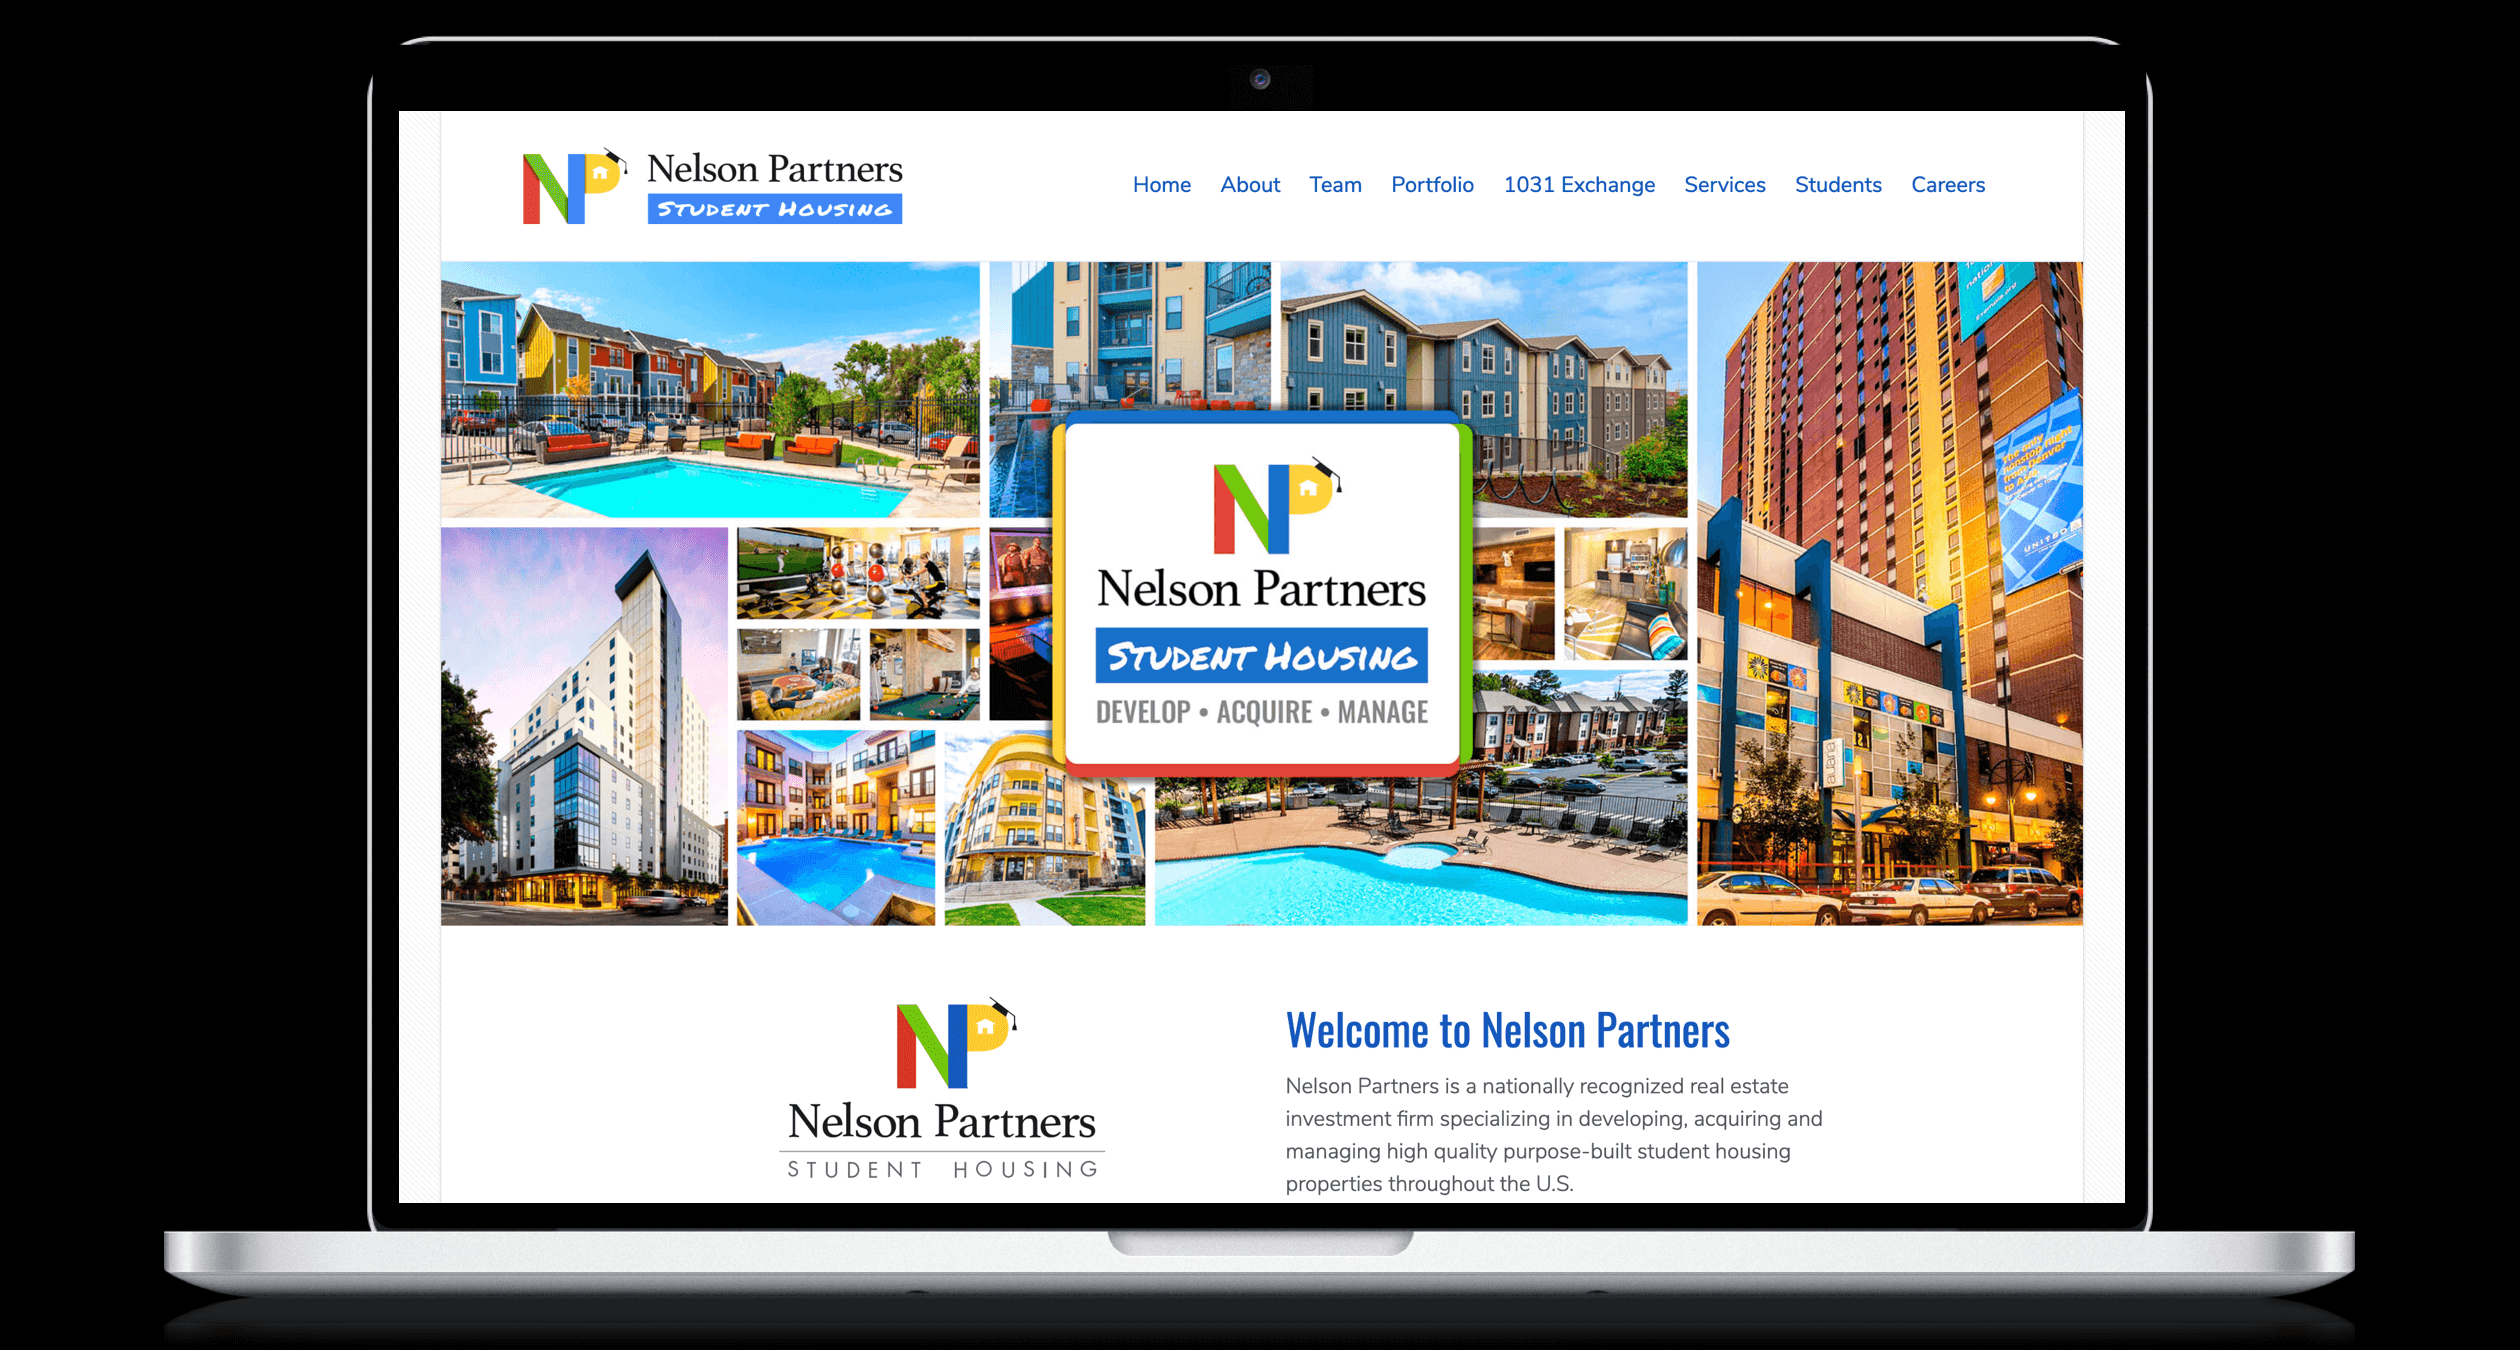 PHX-Web-Agency-Nelson-Partners-Student-Housing-Apartments-1031-Exchange-REIT-Website-Design-After